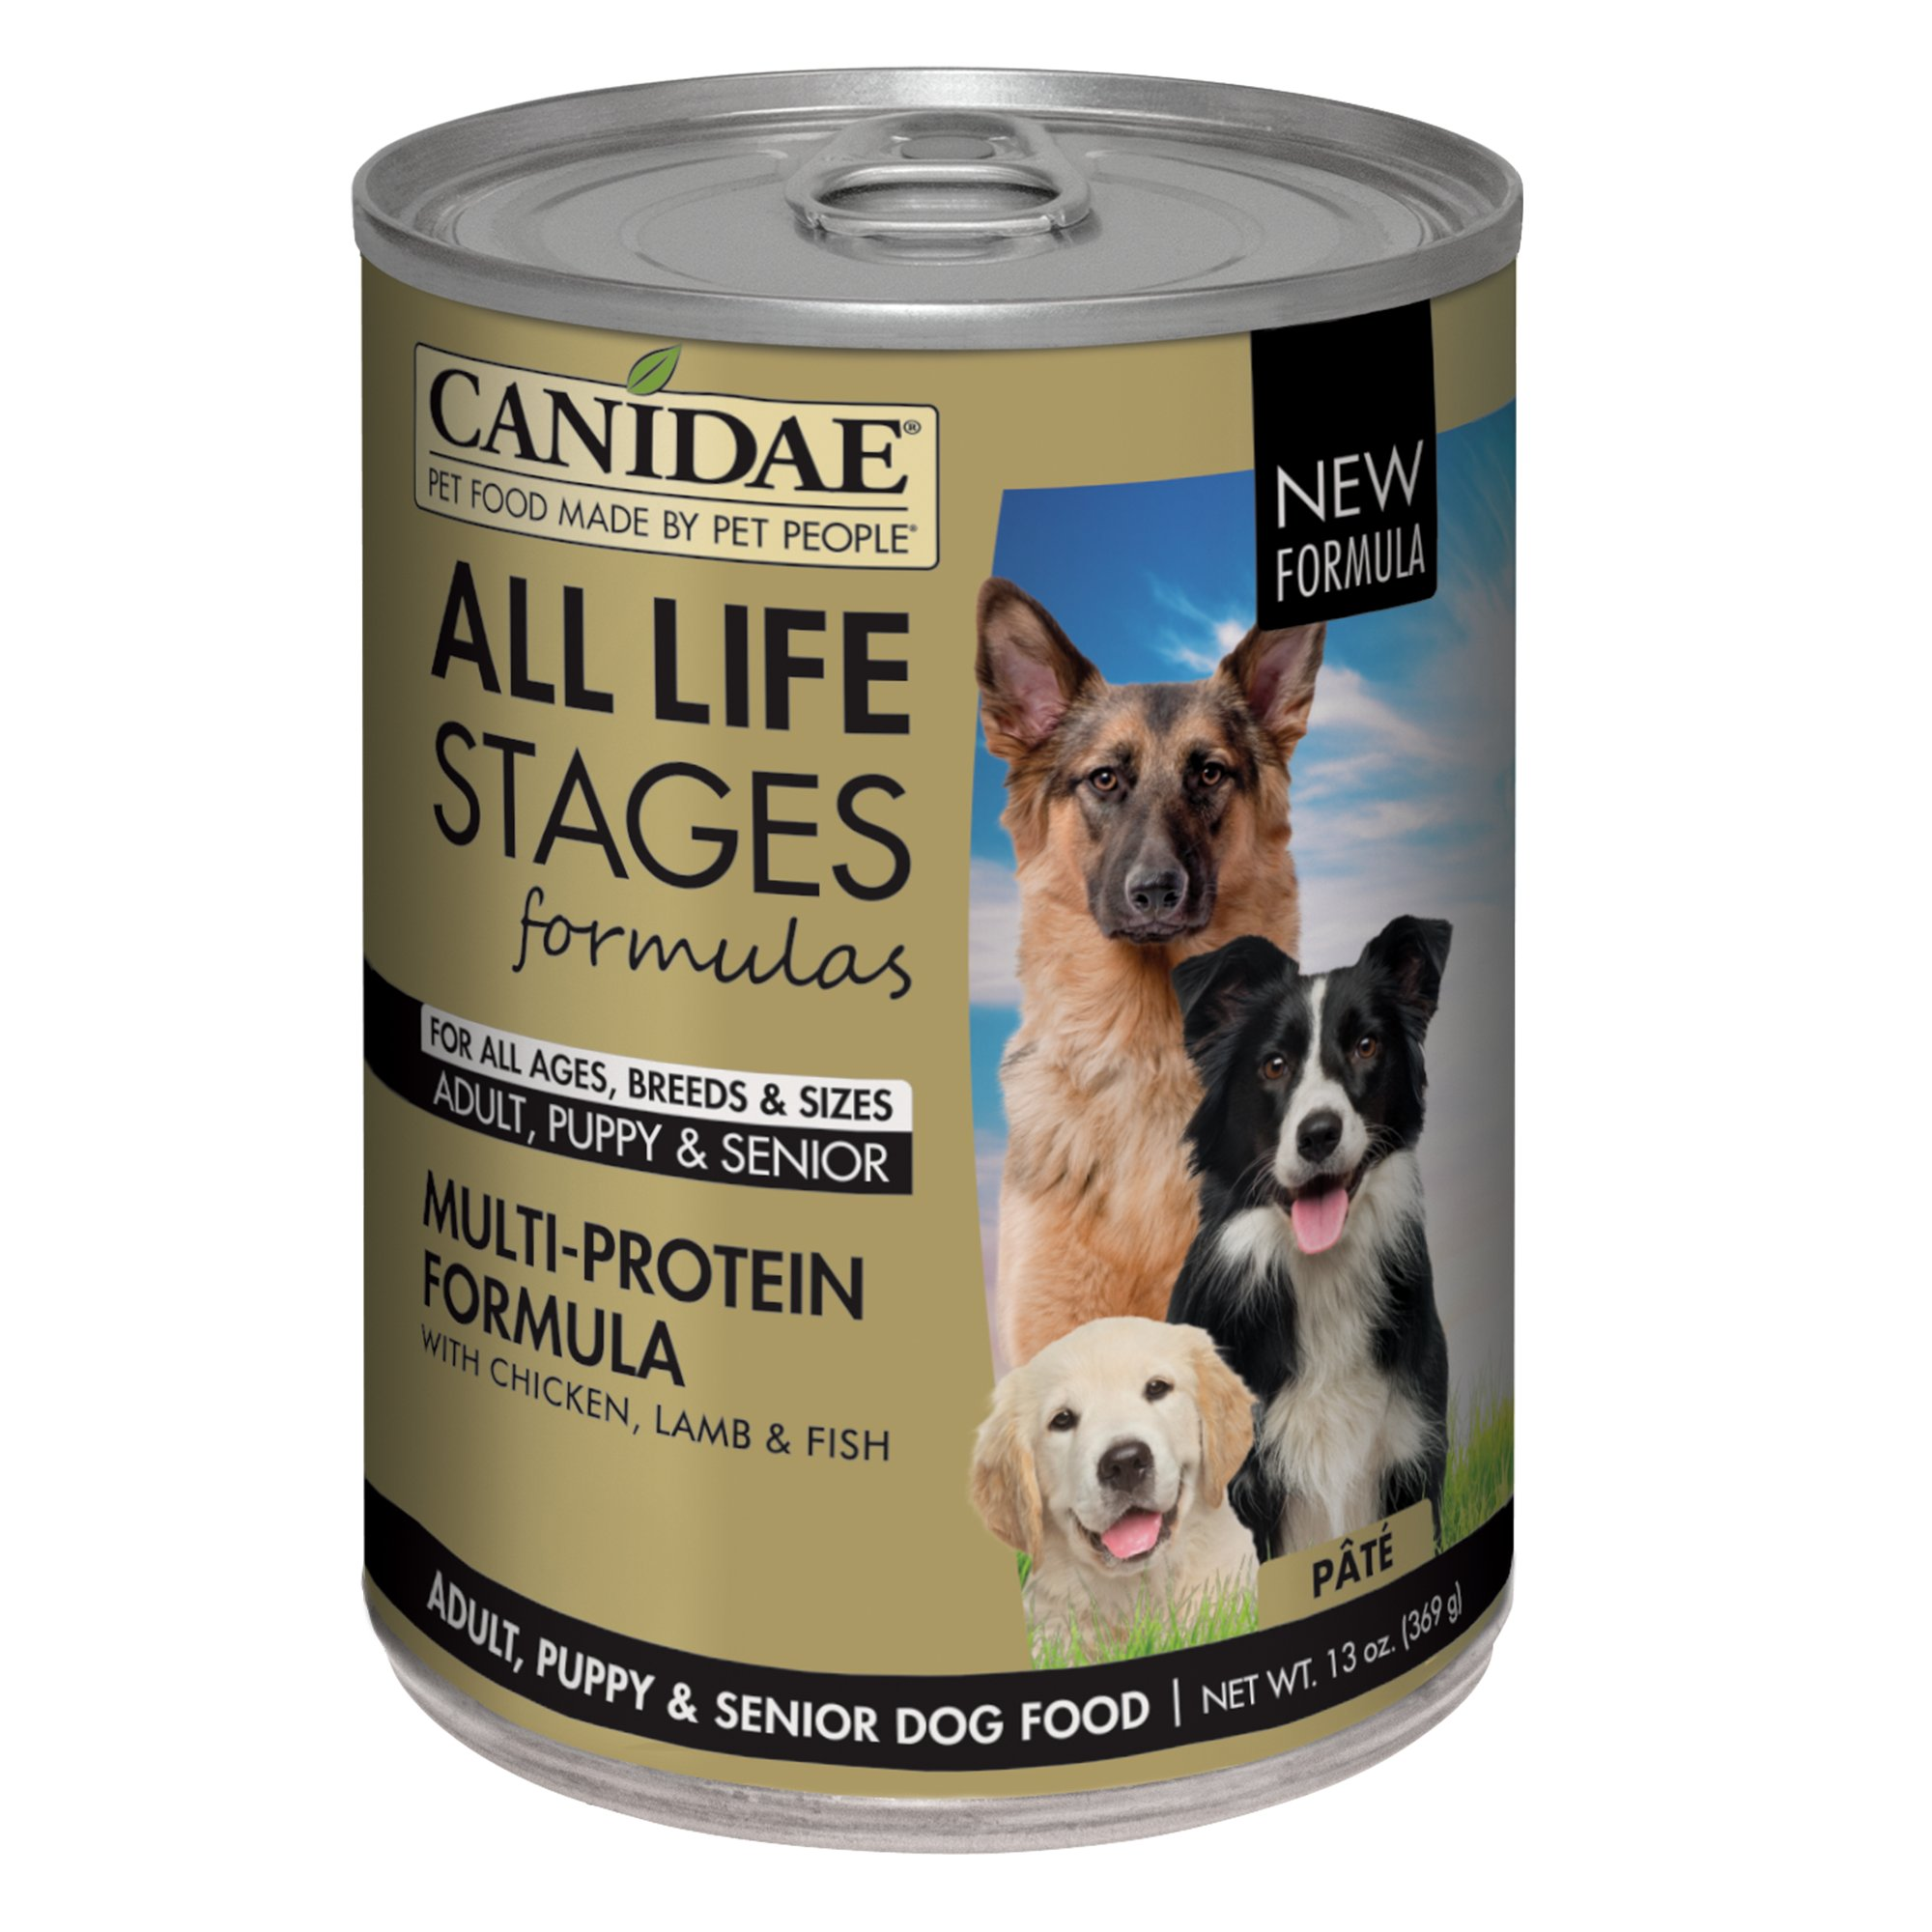 Canidae Life Stages All Life Stages Canned Dog Food, Chicken, Lamb & Fish